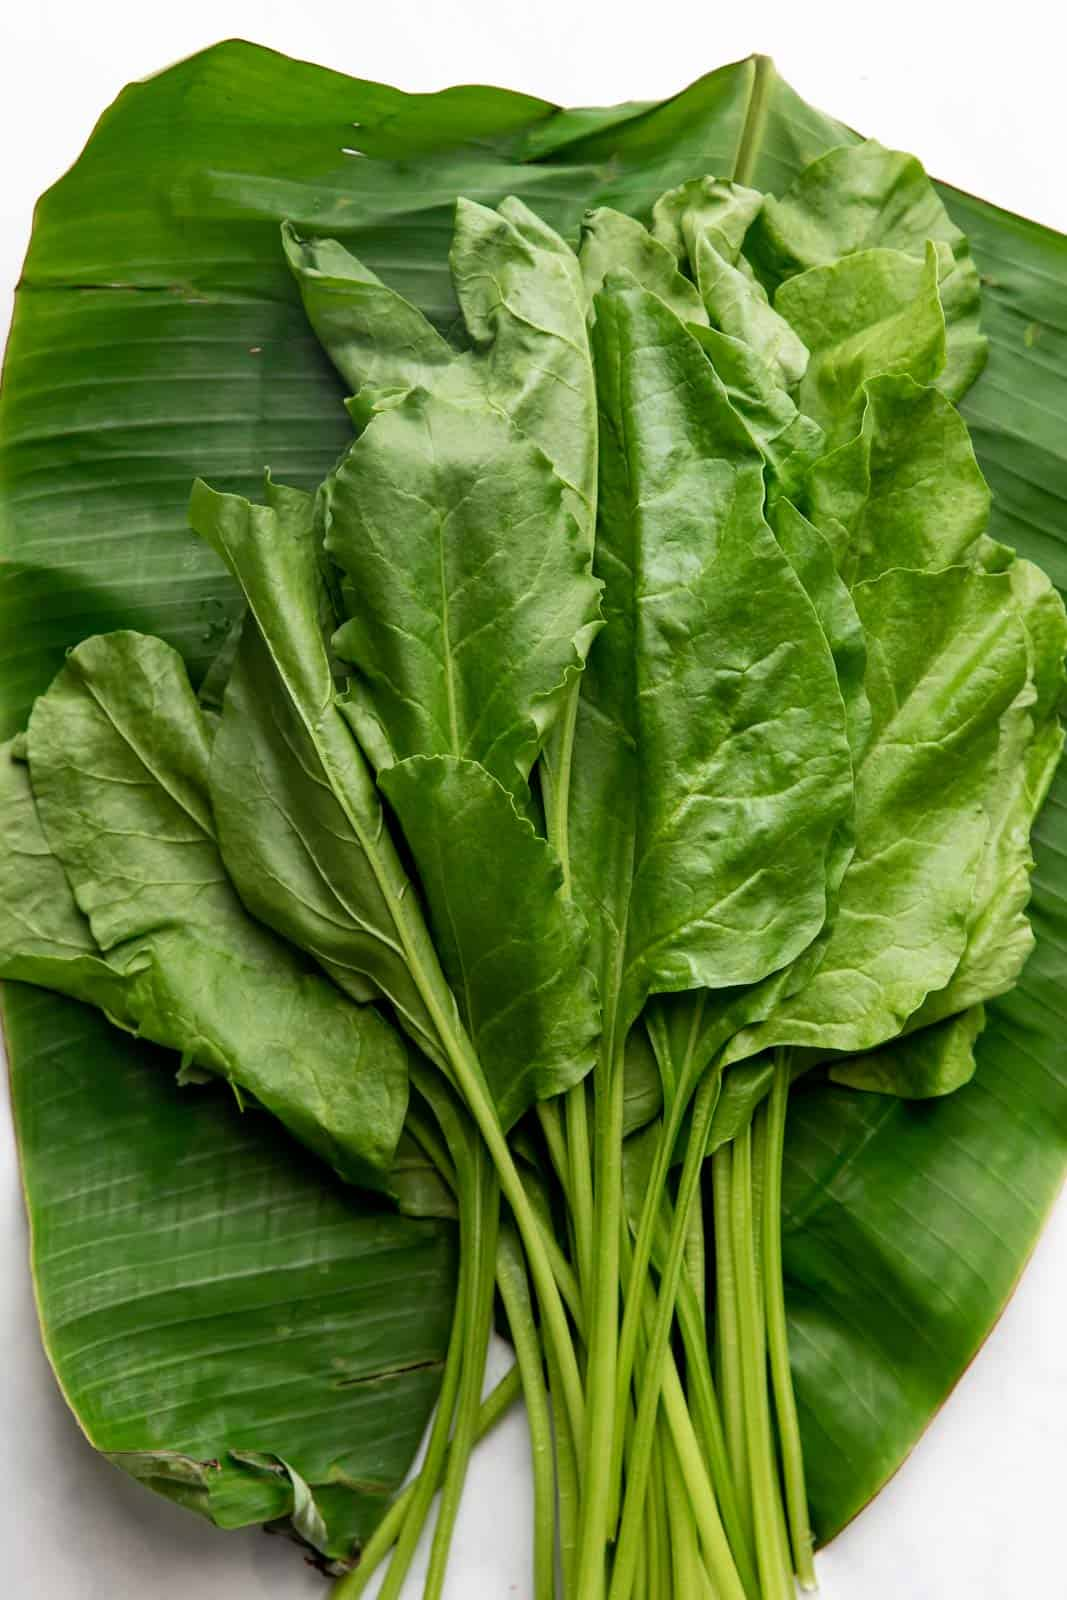 Raw spinach on a banana leaf